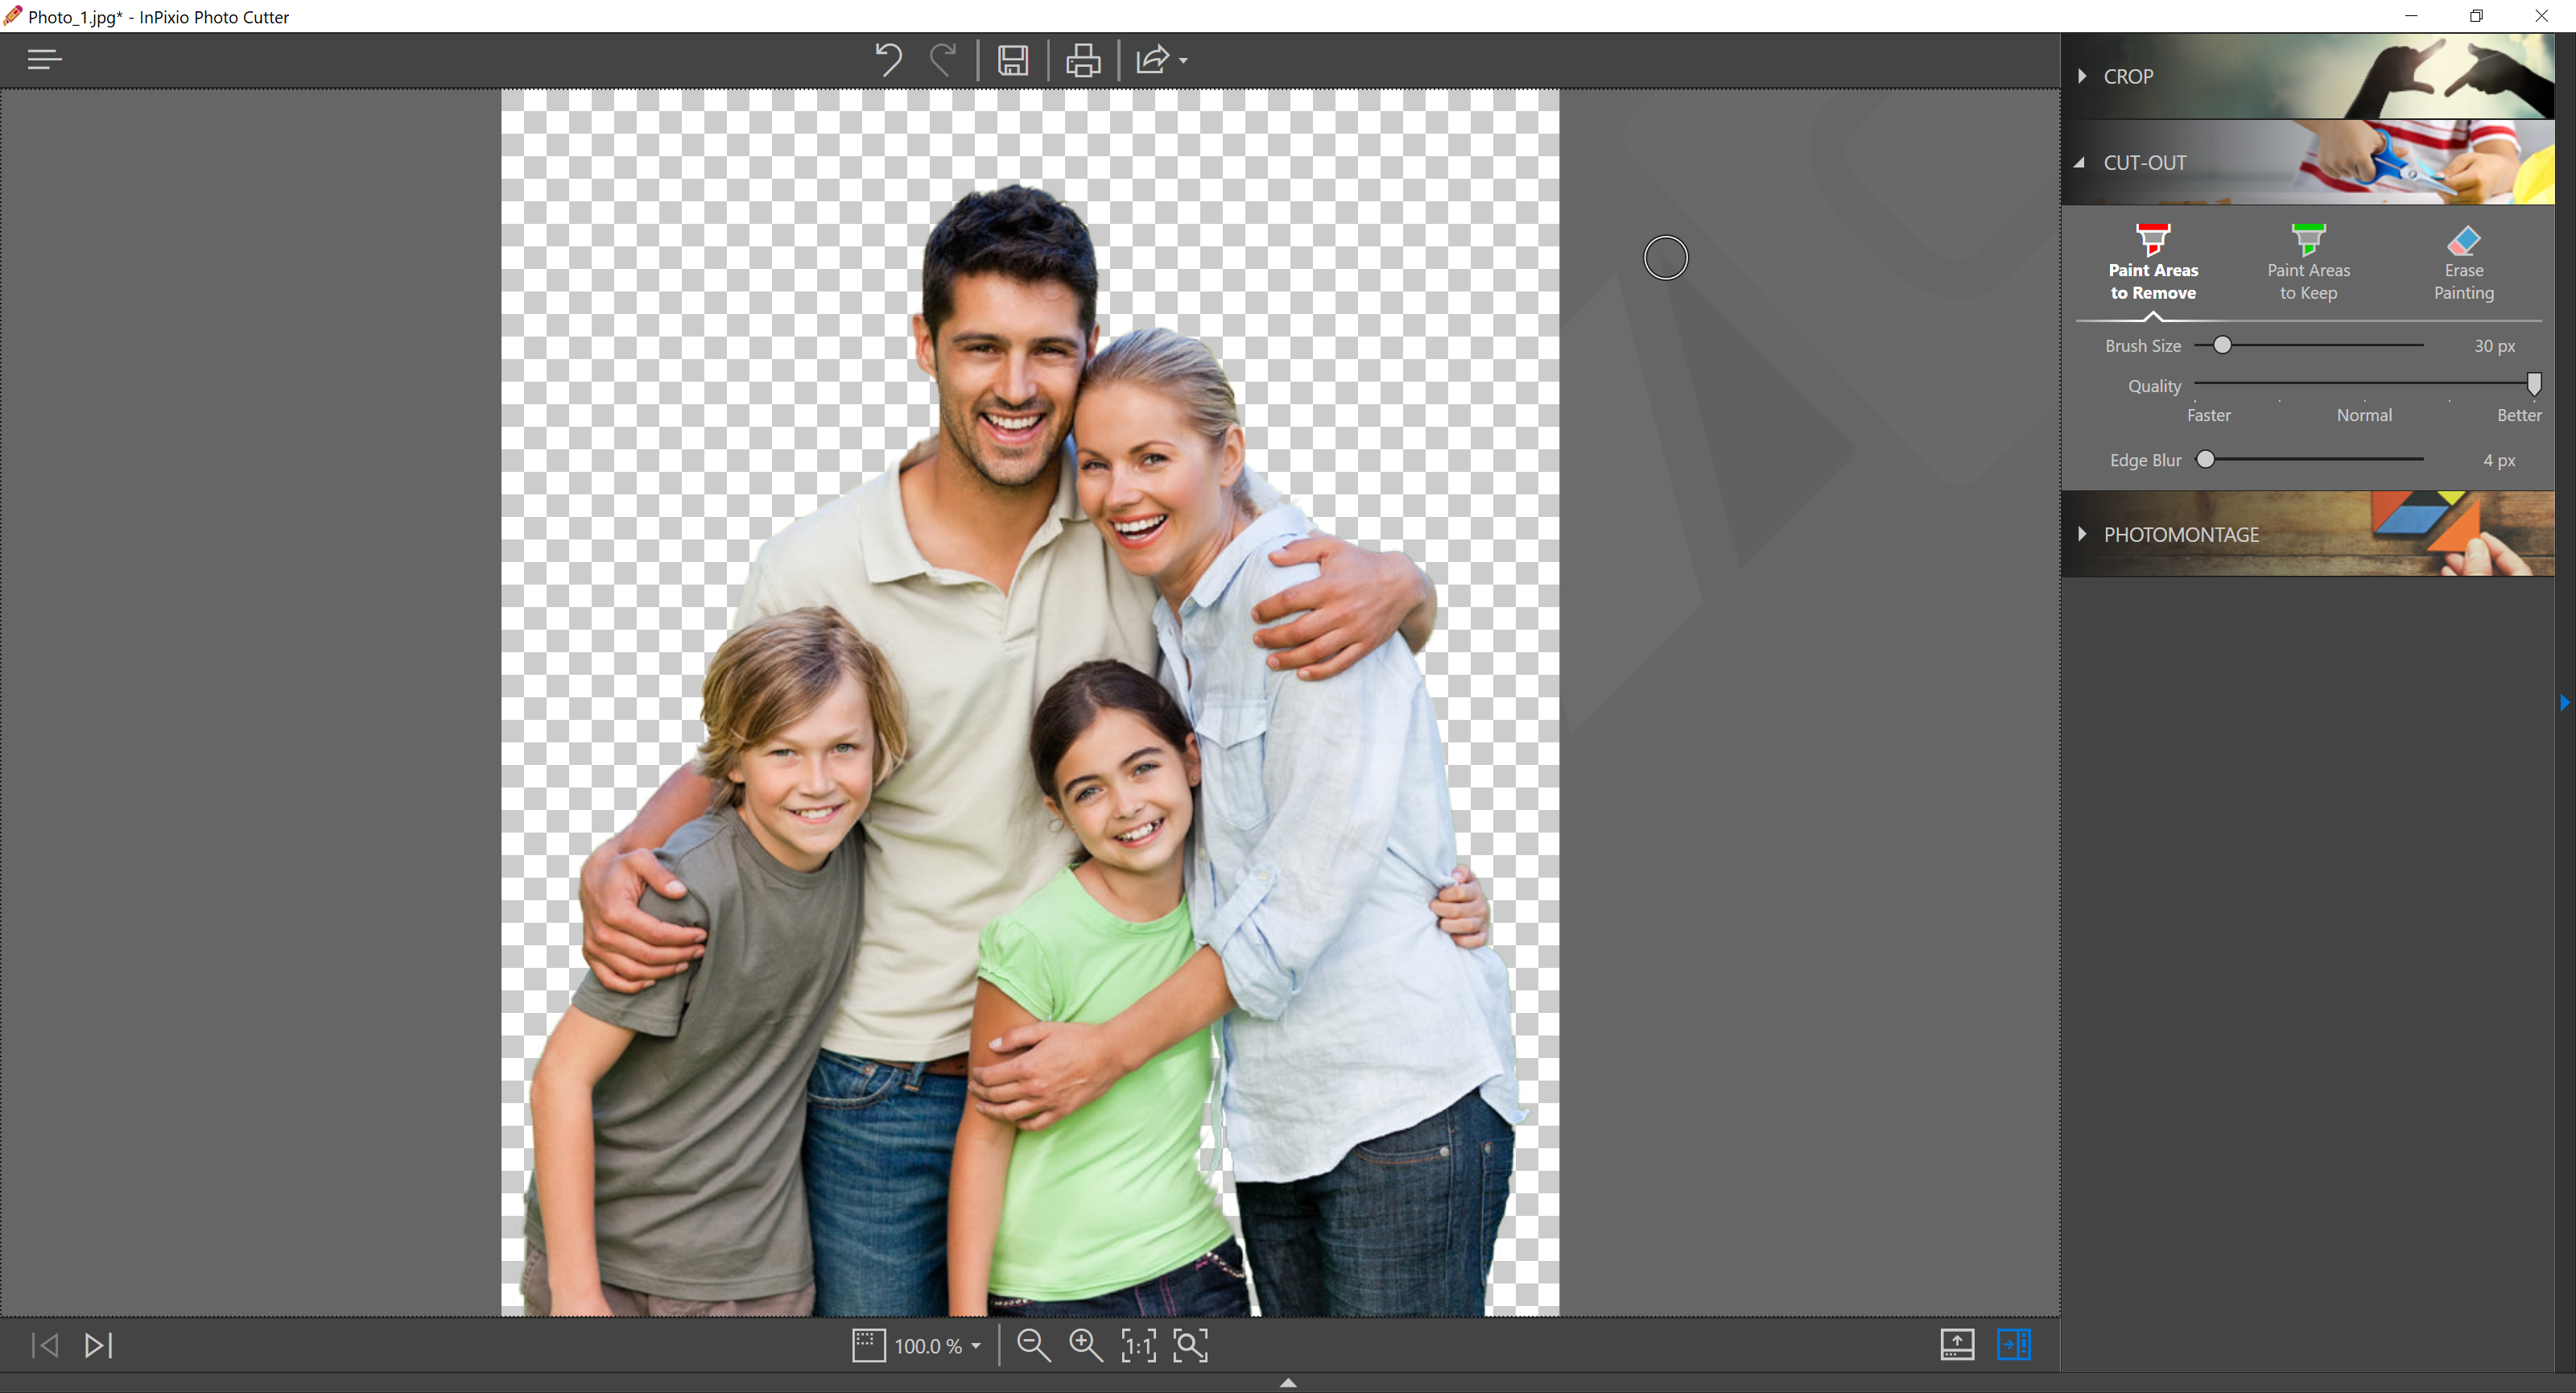 InPixio Photo Cutter Full Version